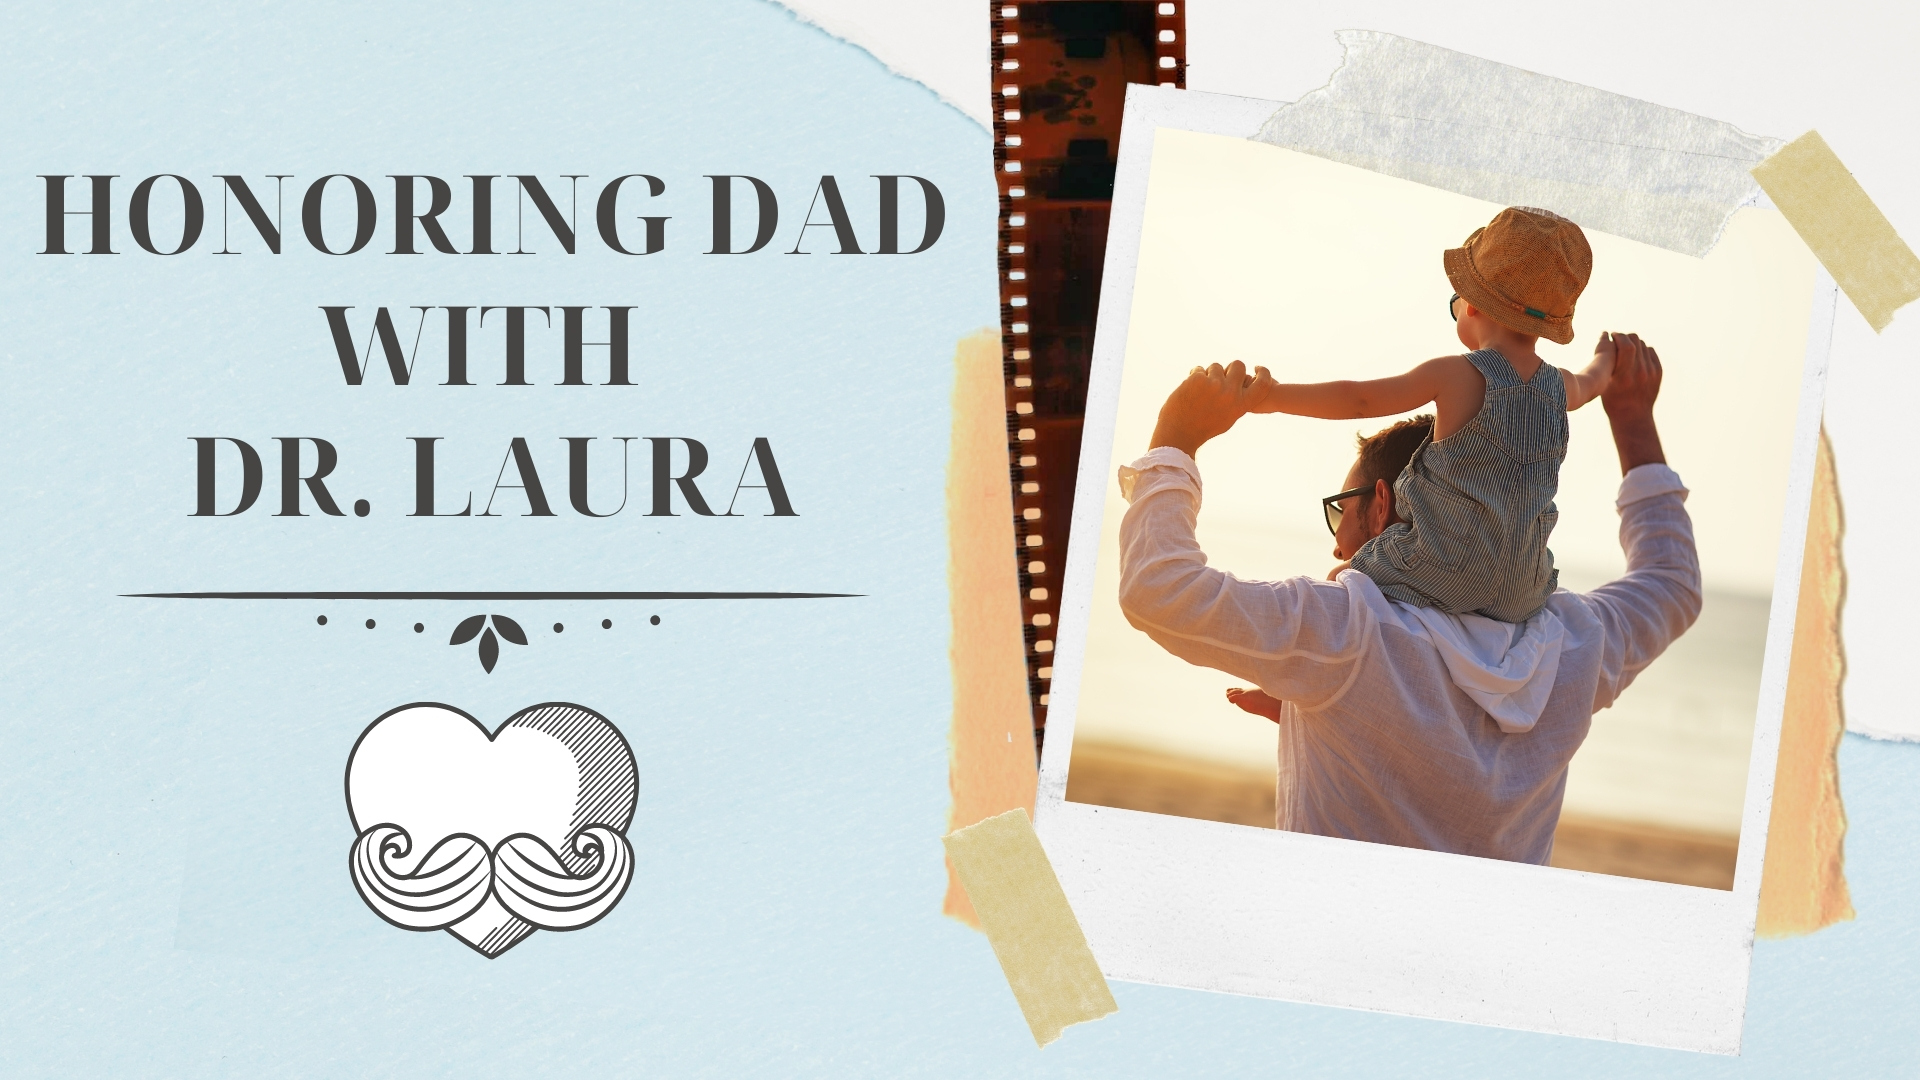 YouTube: Honoring Dad with Dr. Laura